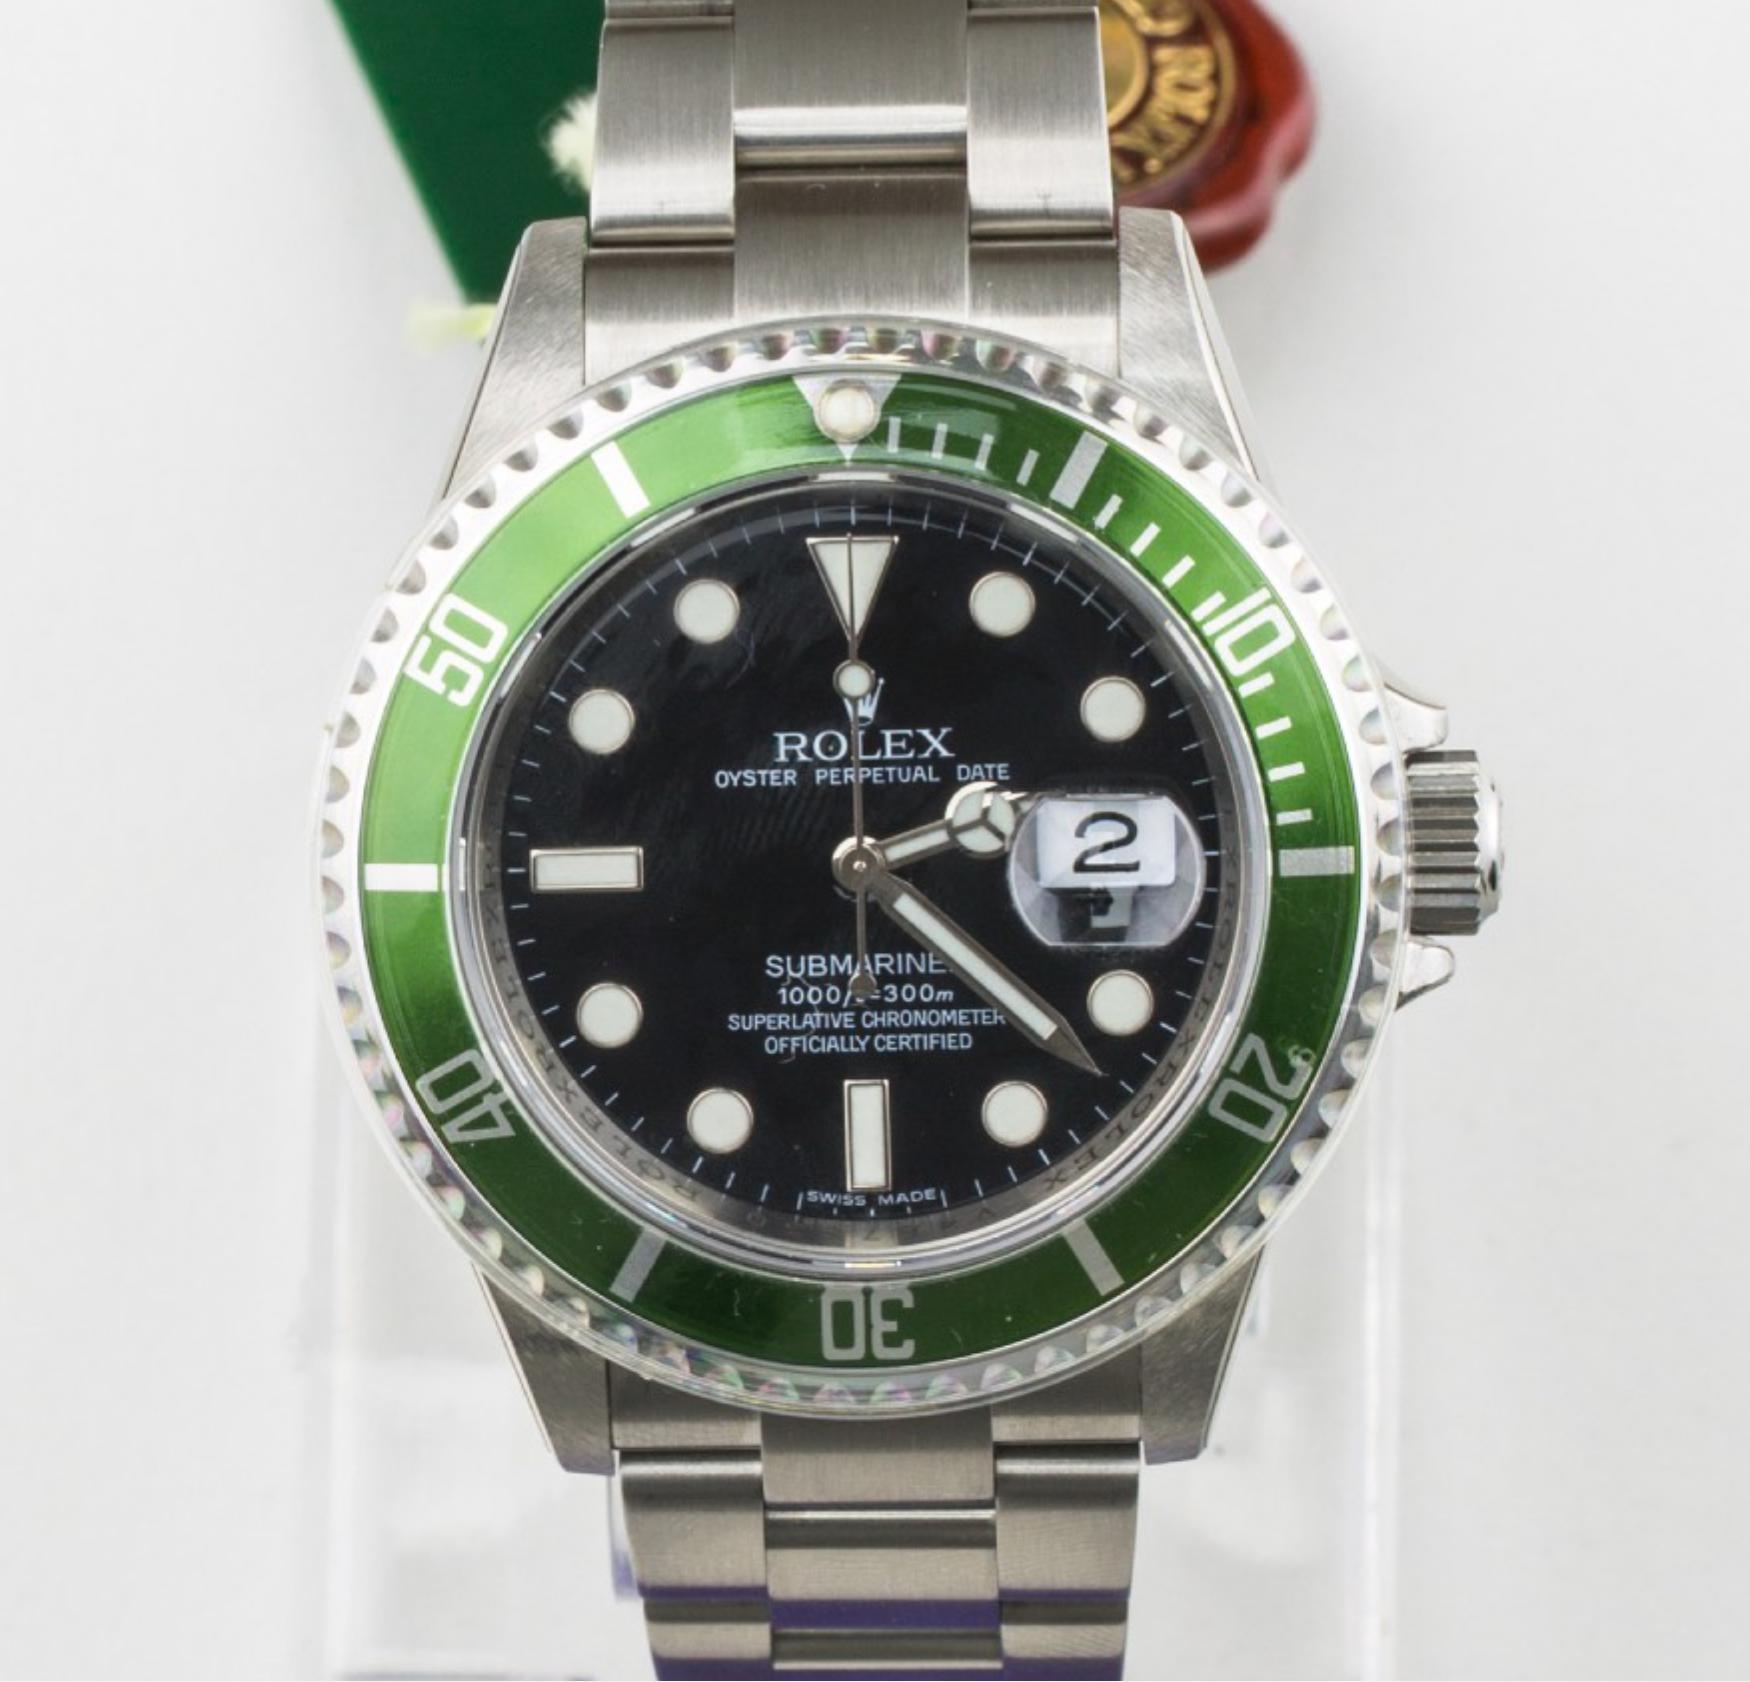 Lot 24 - ROLEX, Rolex Submariner, New Old Stock